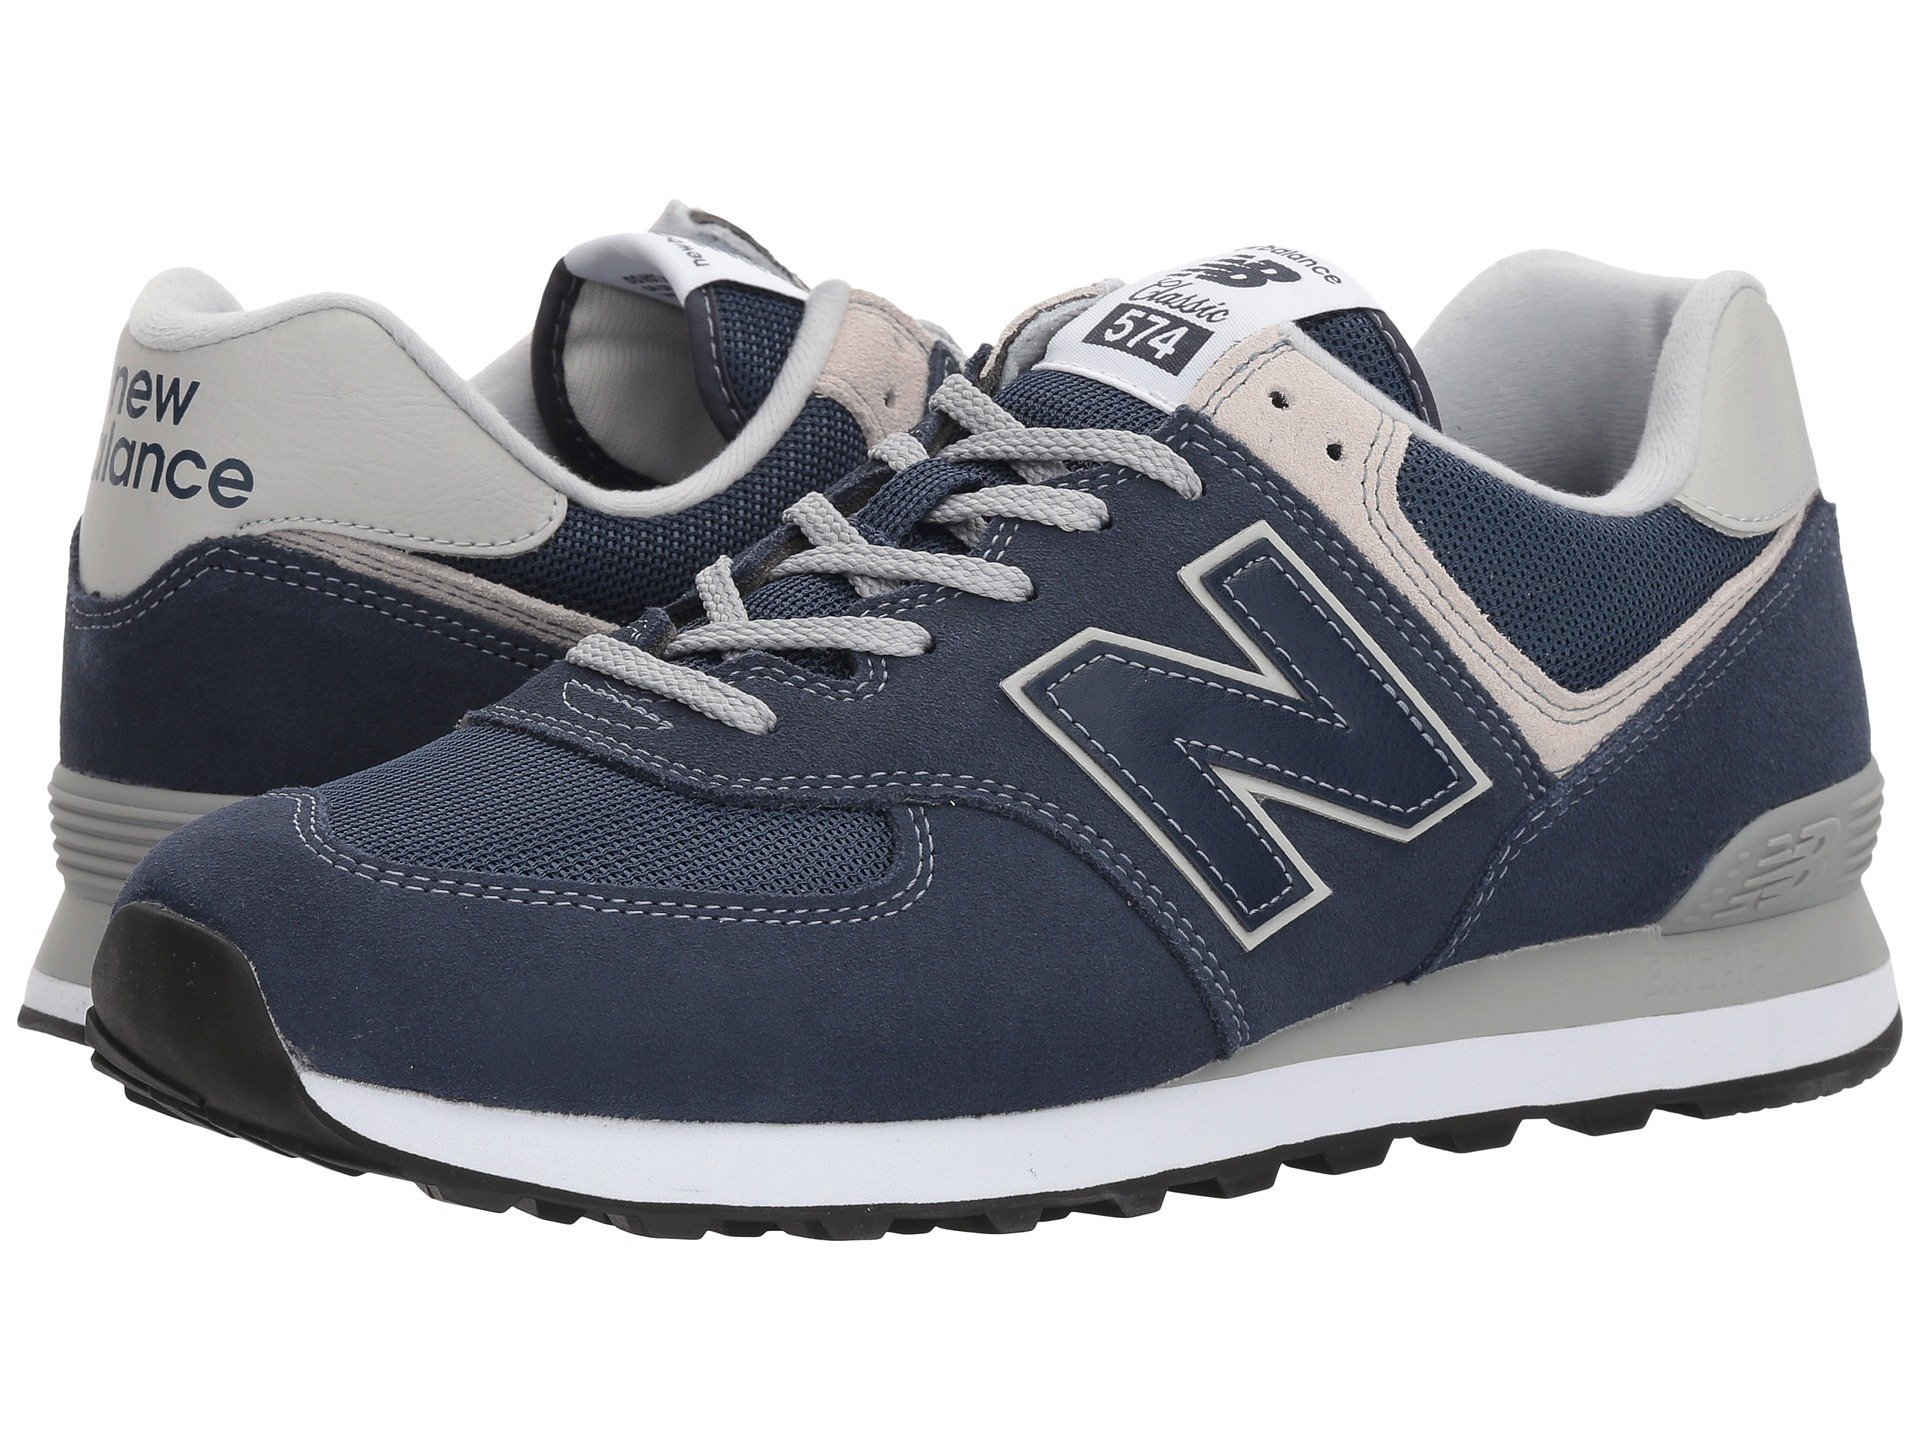 Cheap 225831 New Balance Classics Ml515 Men Grey Blue Shoes